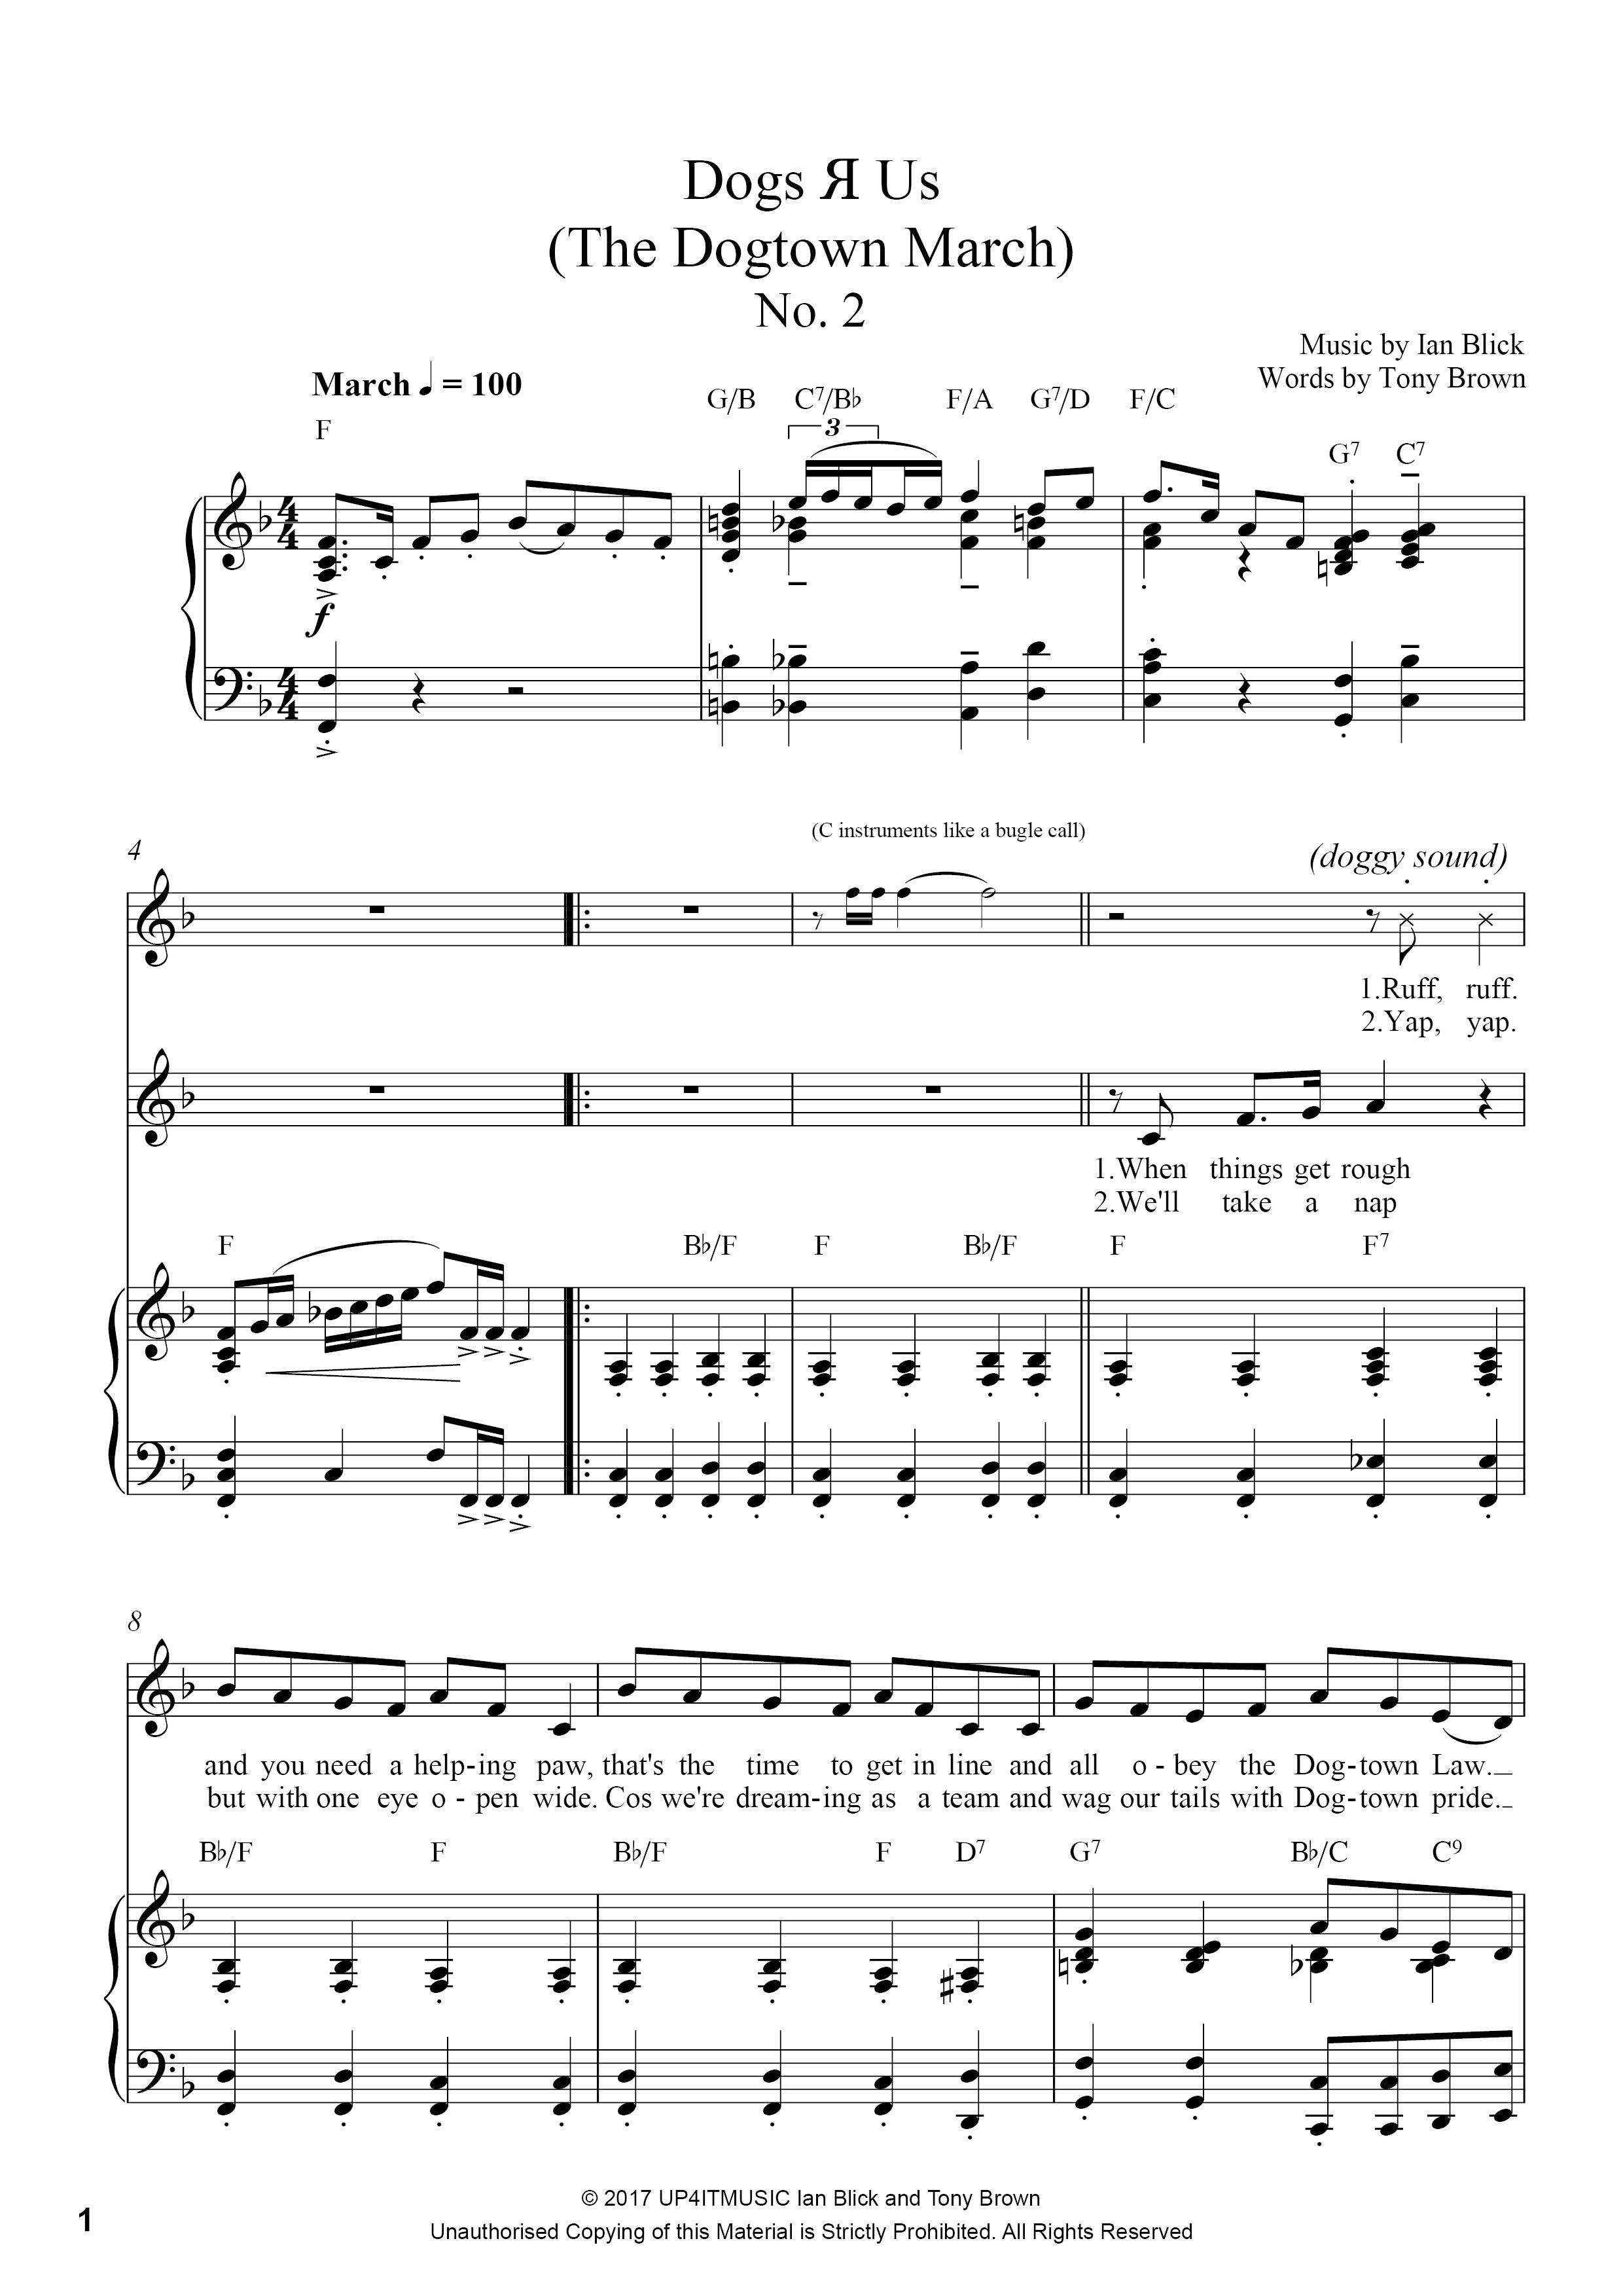 Reach Out and Touch - Piano/Vocal Score Sheet Music/MP3 FREE